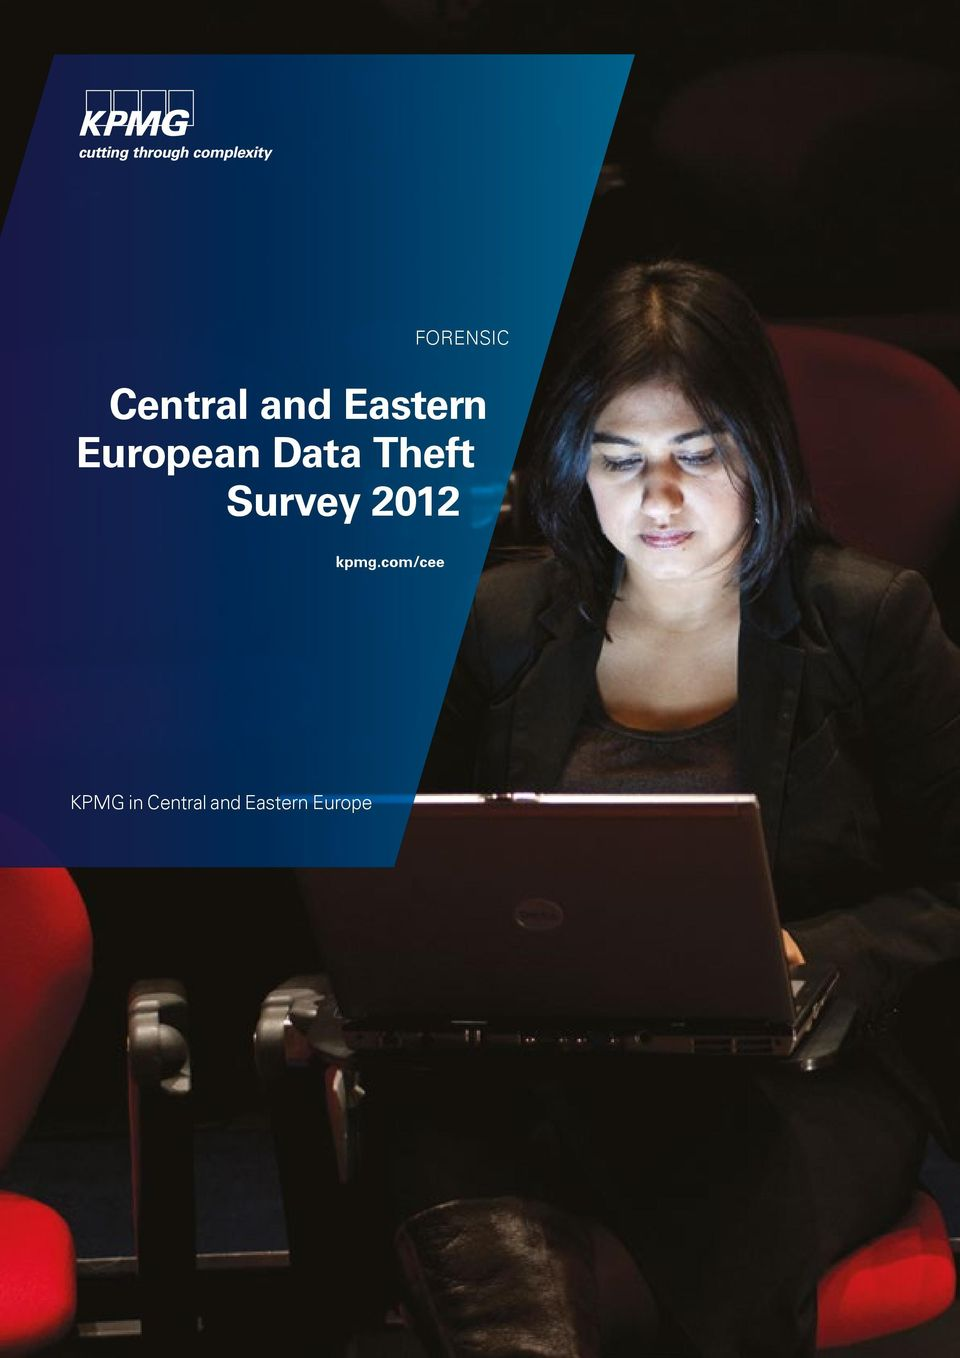 Theft Survey 2012 kpmg.